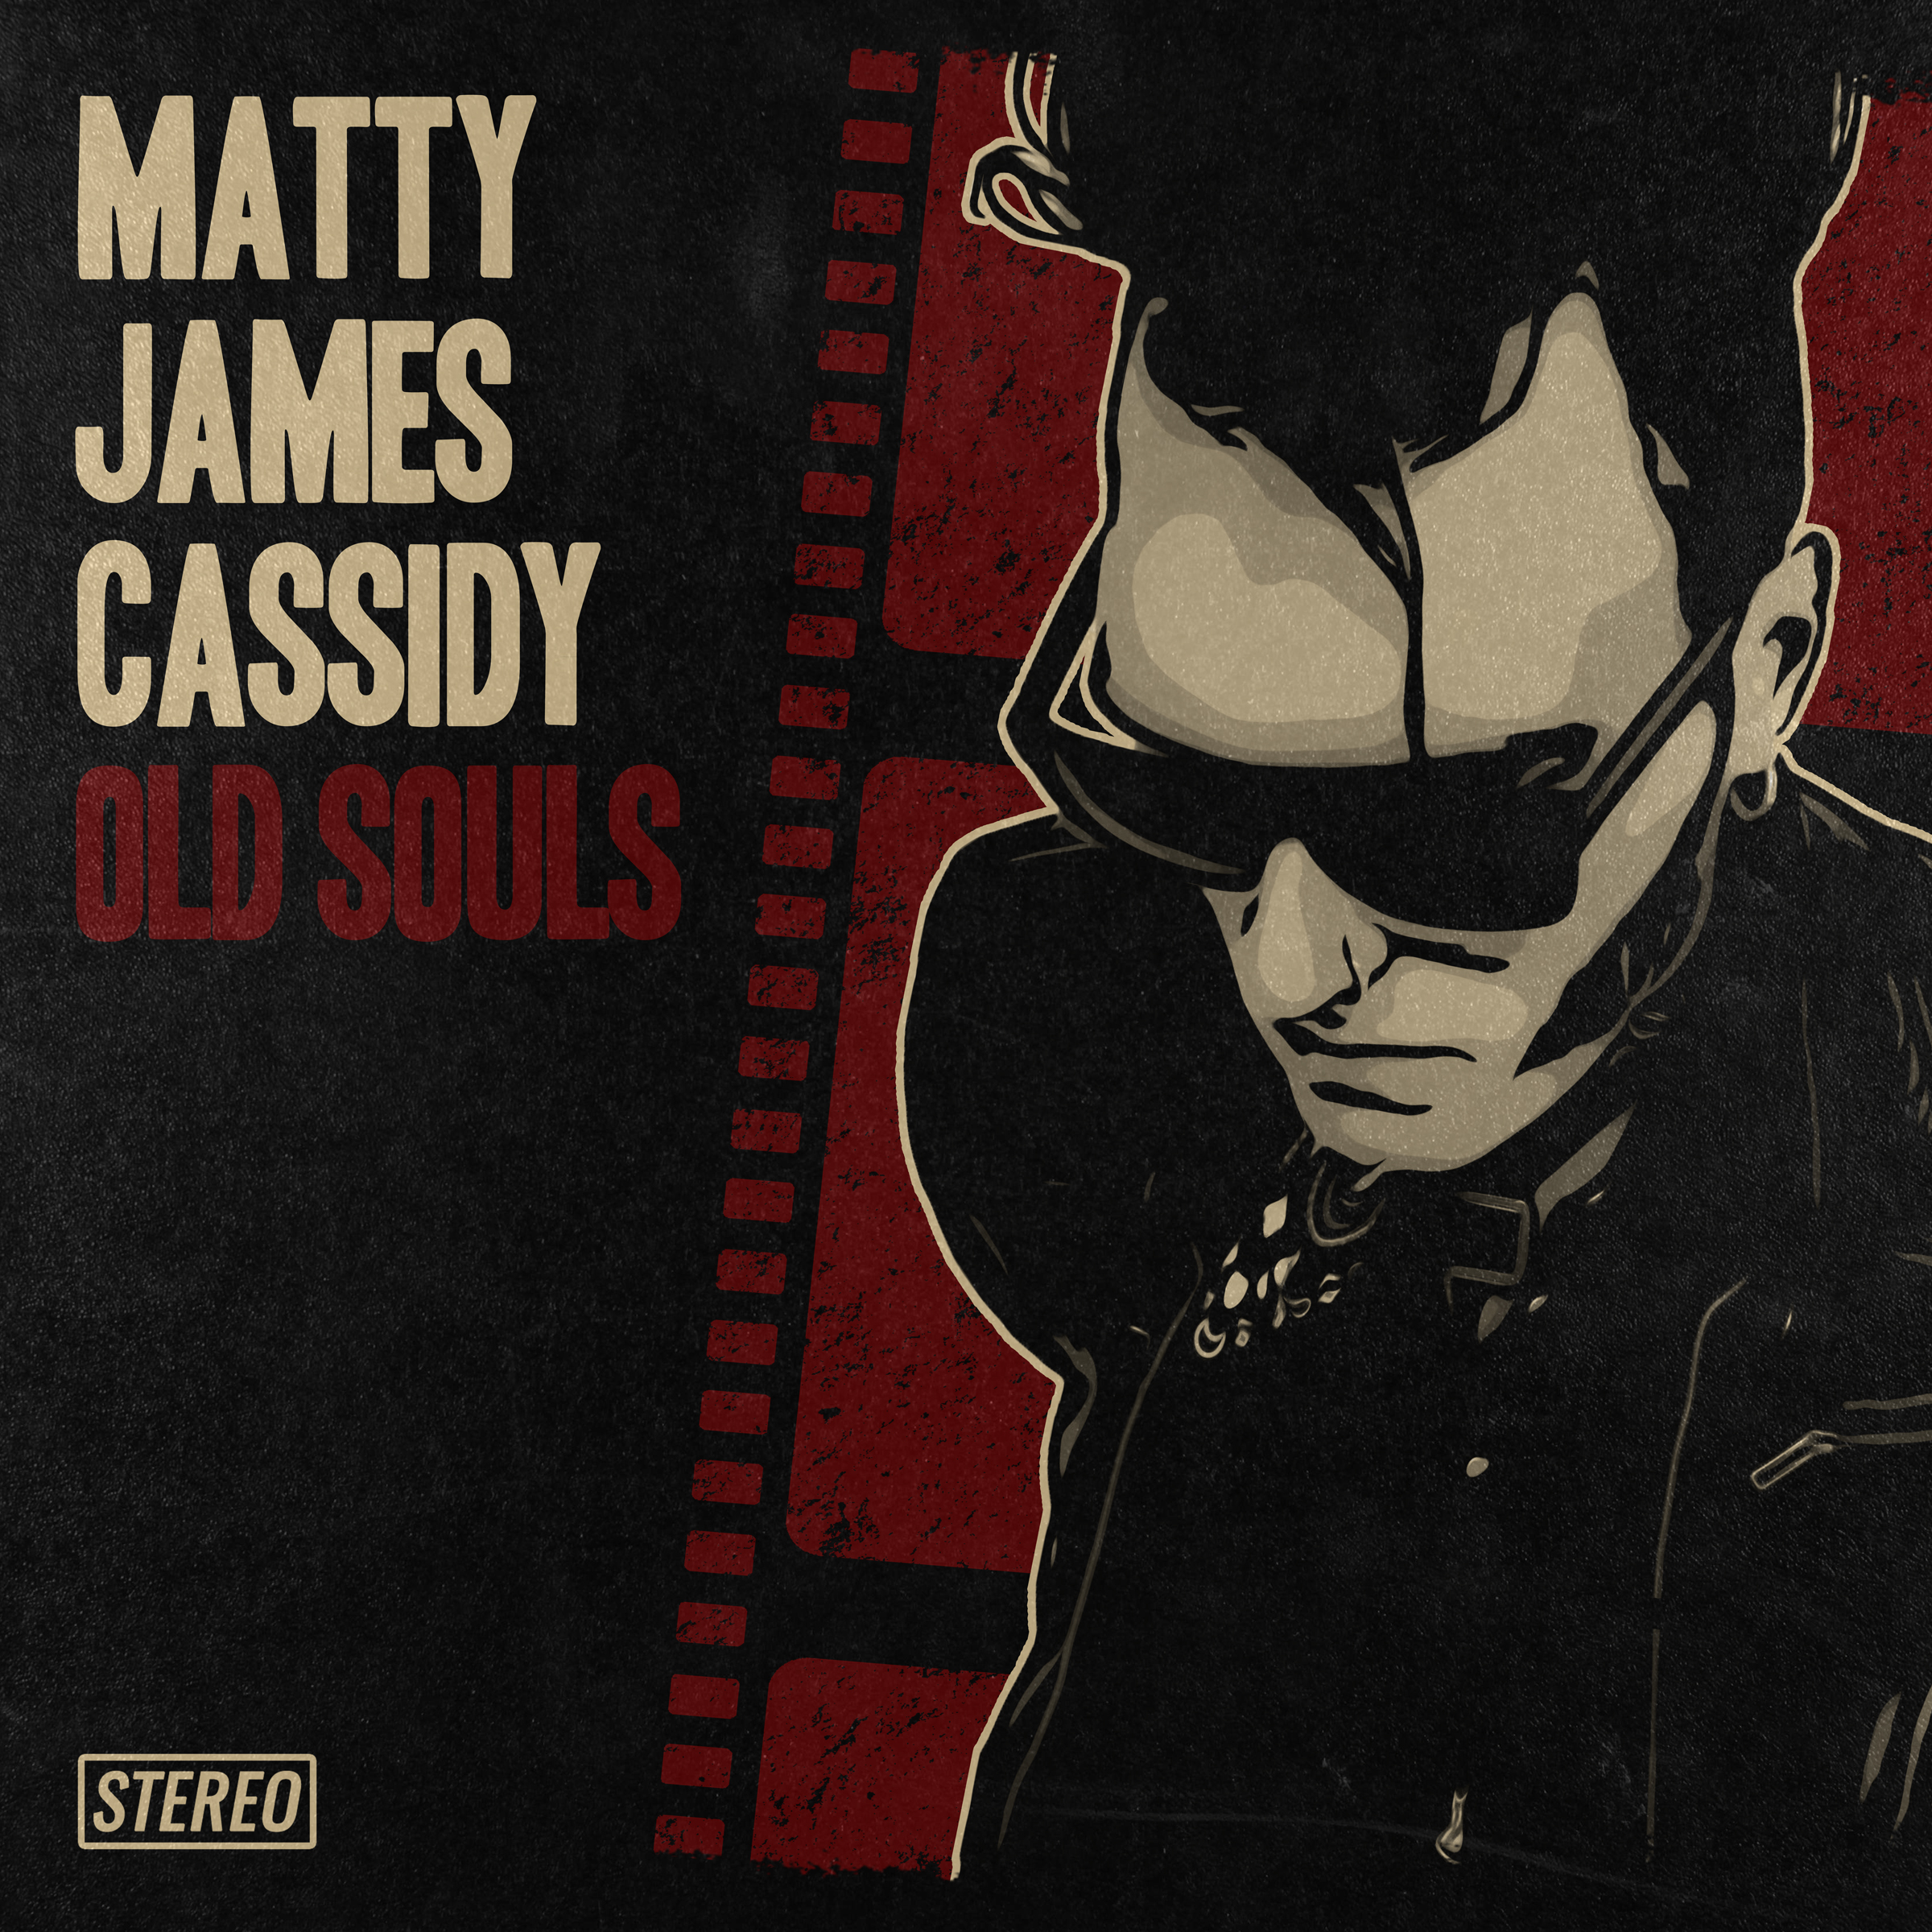 Matty James Cassidy - Old Souls (2020)